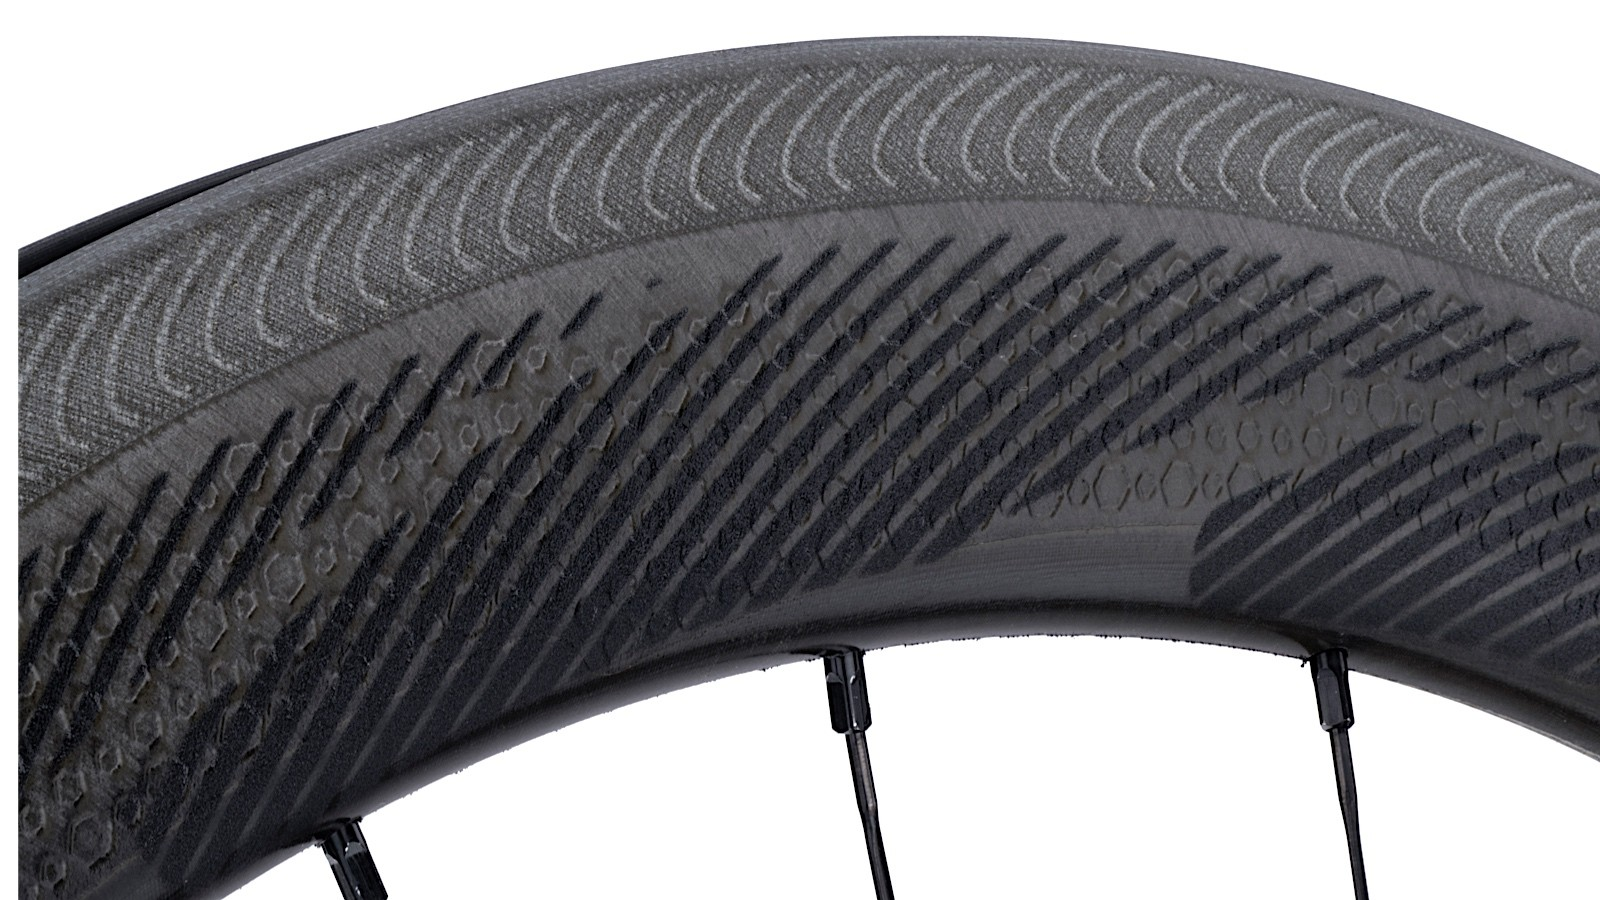 The NSW wheels have Zipp's etched Showstopper brake track and the company's dimpled rim surface